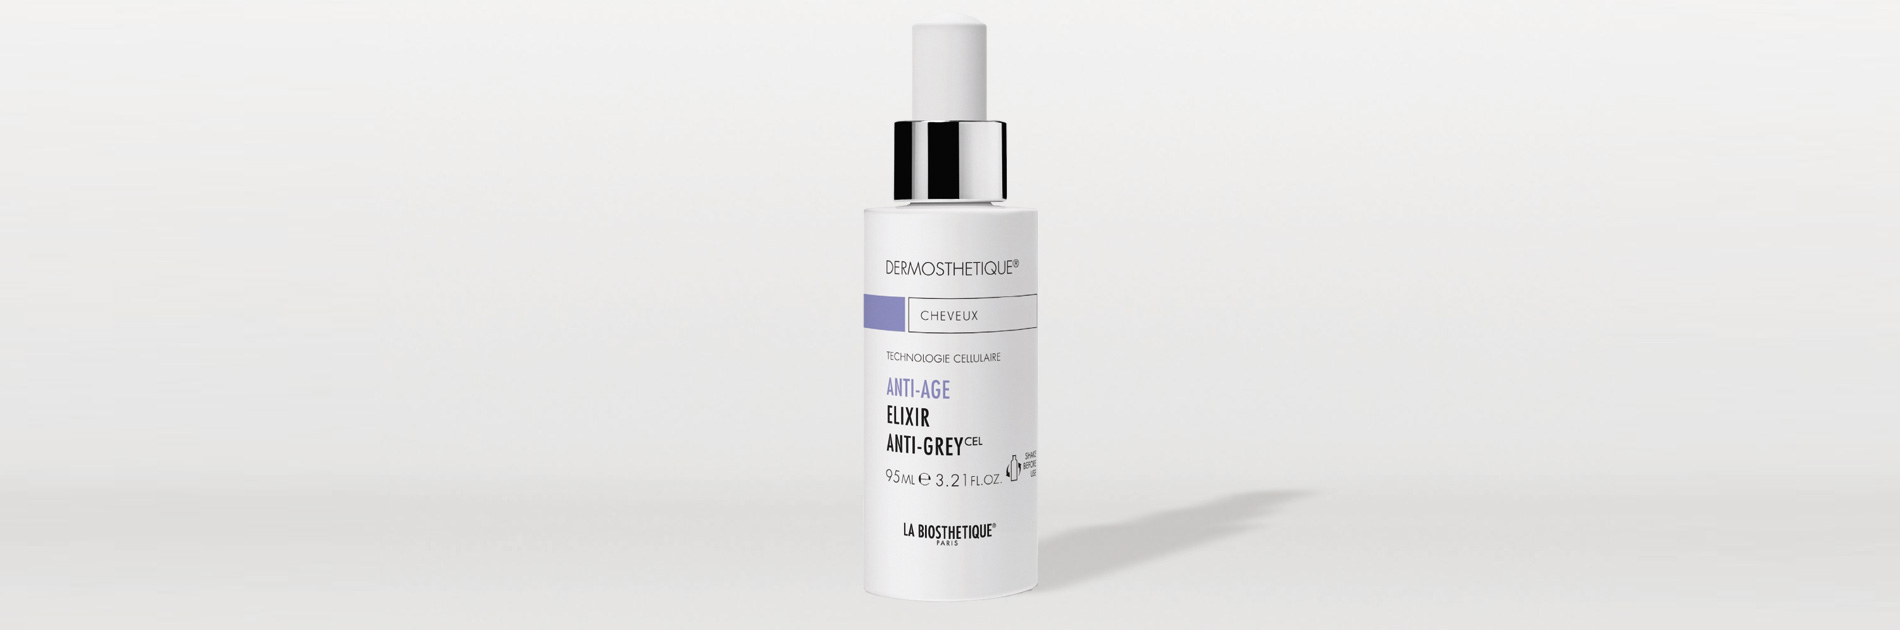 Dermosthetique Elixir Anti-Grey